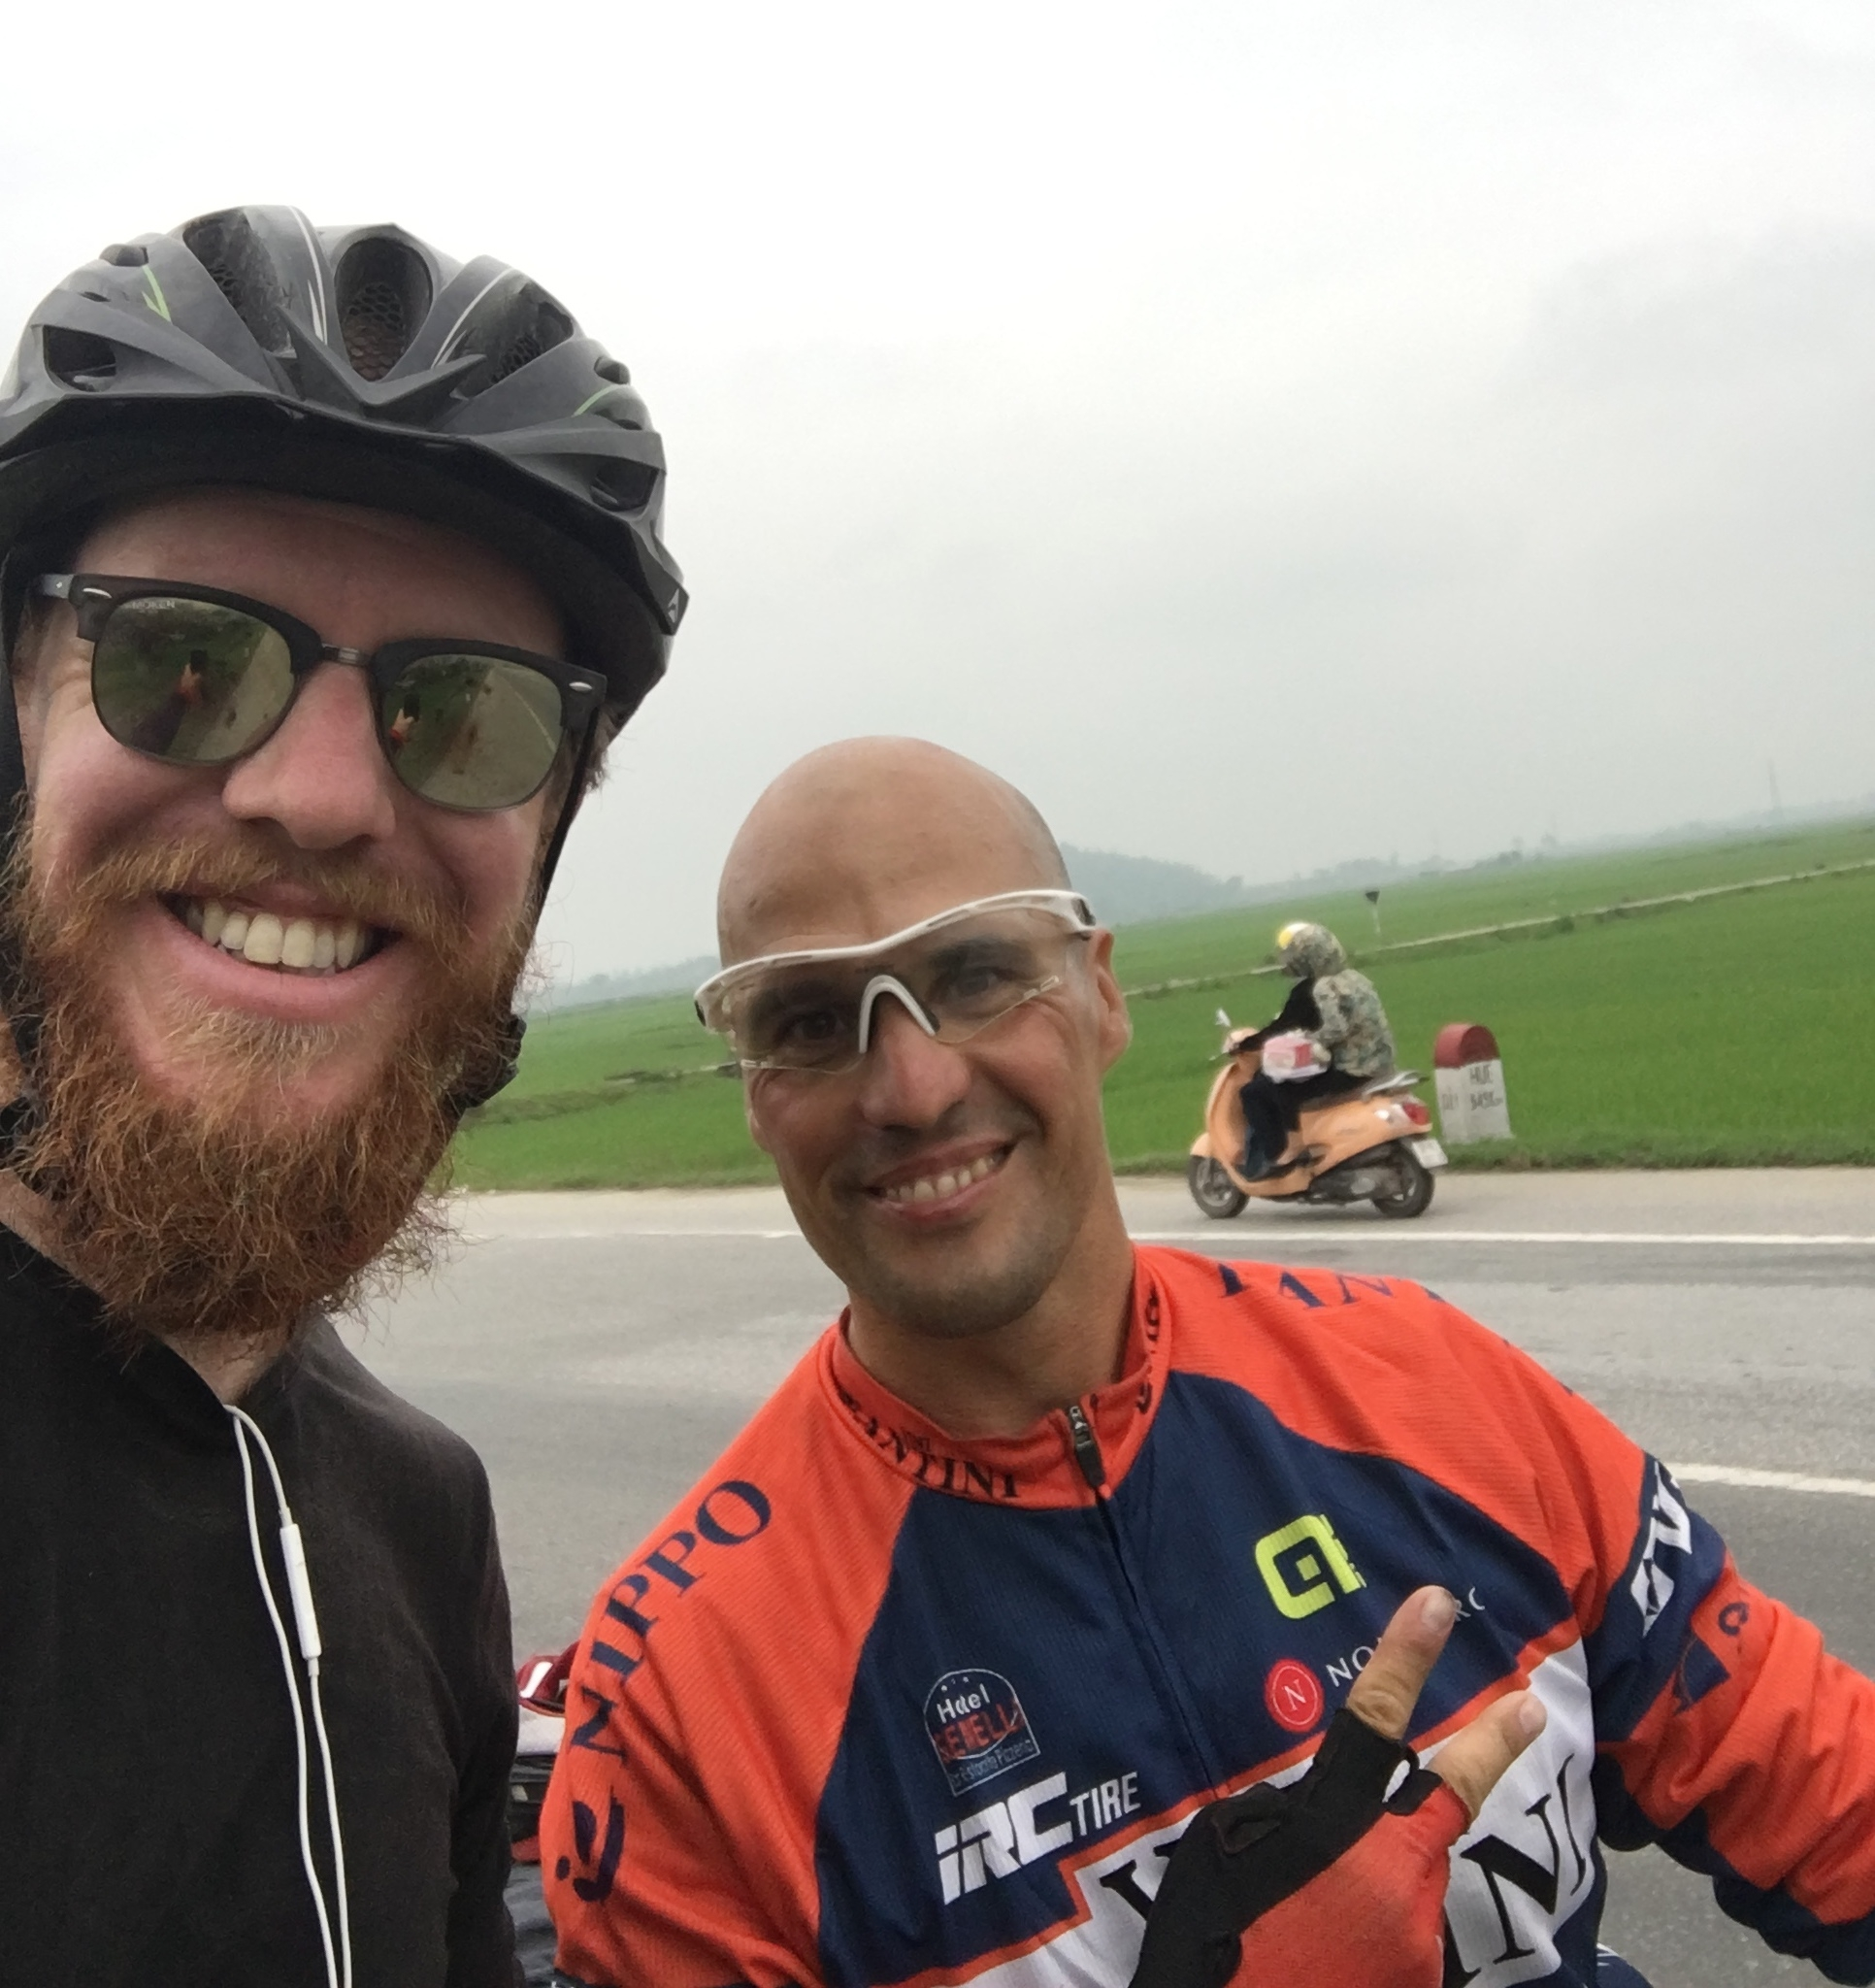 Meeting another Bike Tourer on the road is always a pleasure, regardless of the language barriers.